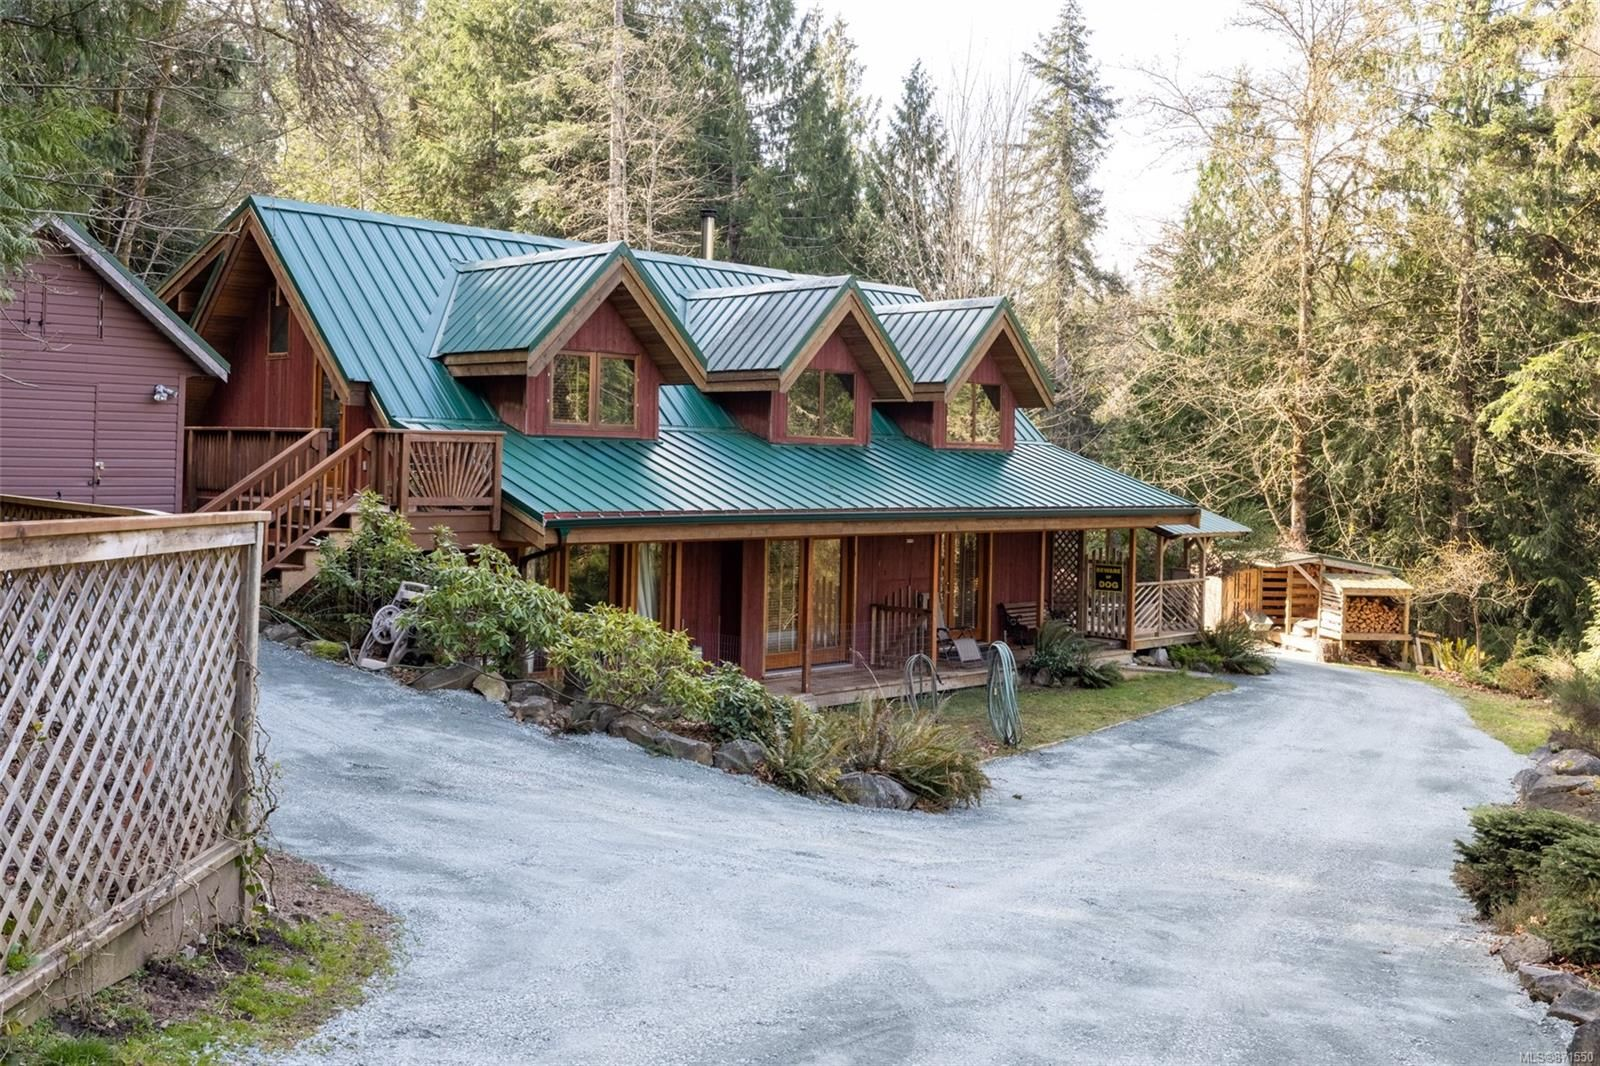 WELCOME TO 448 LAKEVIEW DR. IN MEADOW VIEW PROPERTIES ON BEAUTIFUL THETIS ISLAND